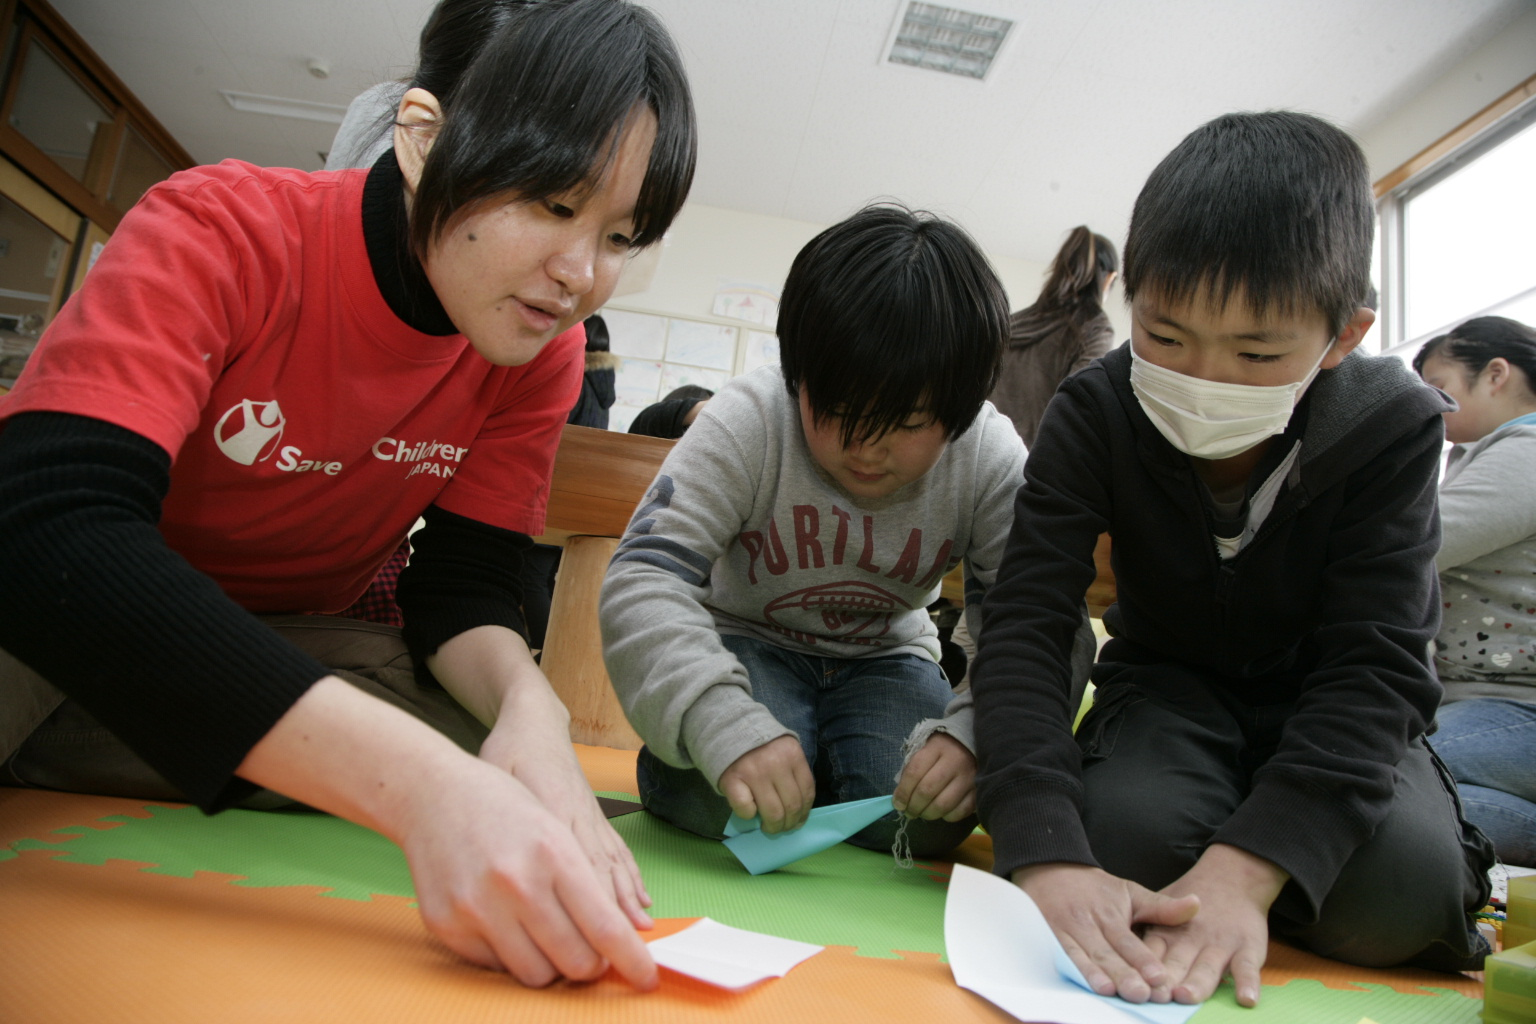 Save the Children Staff member Yuko Nishiguchi